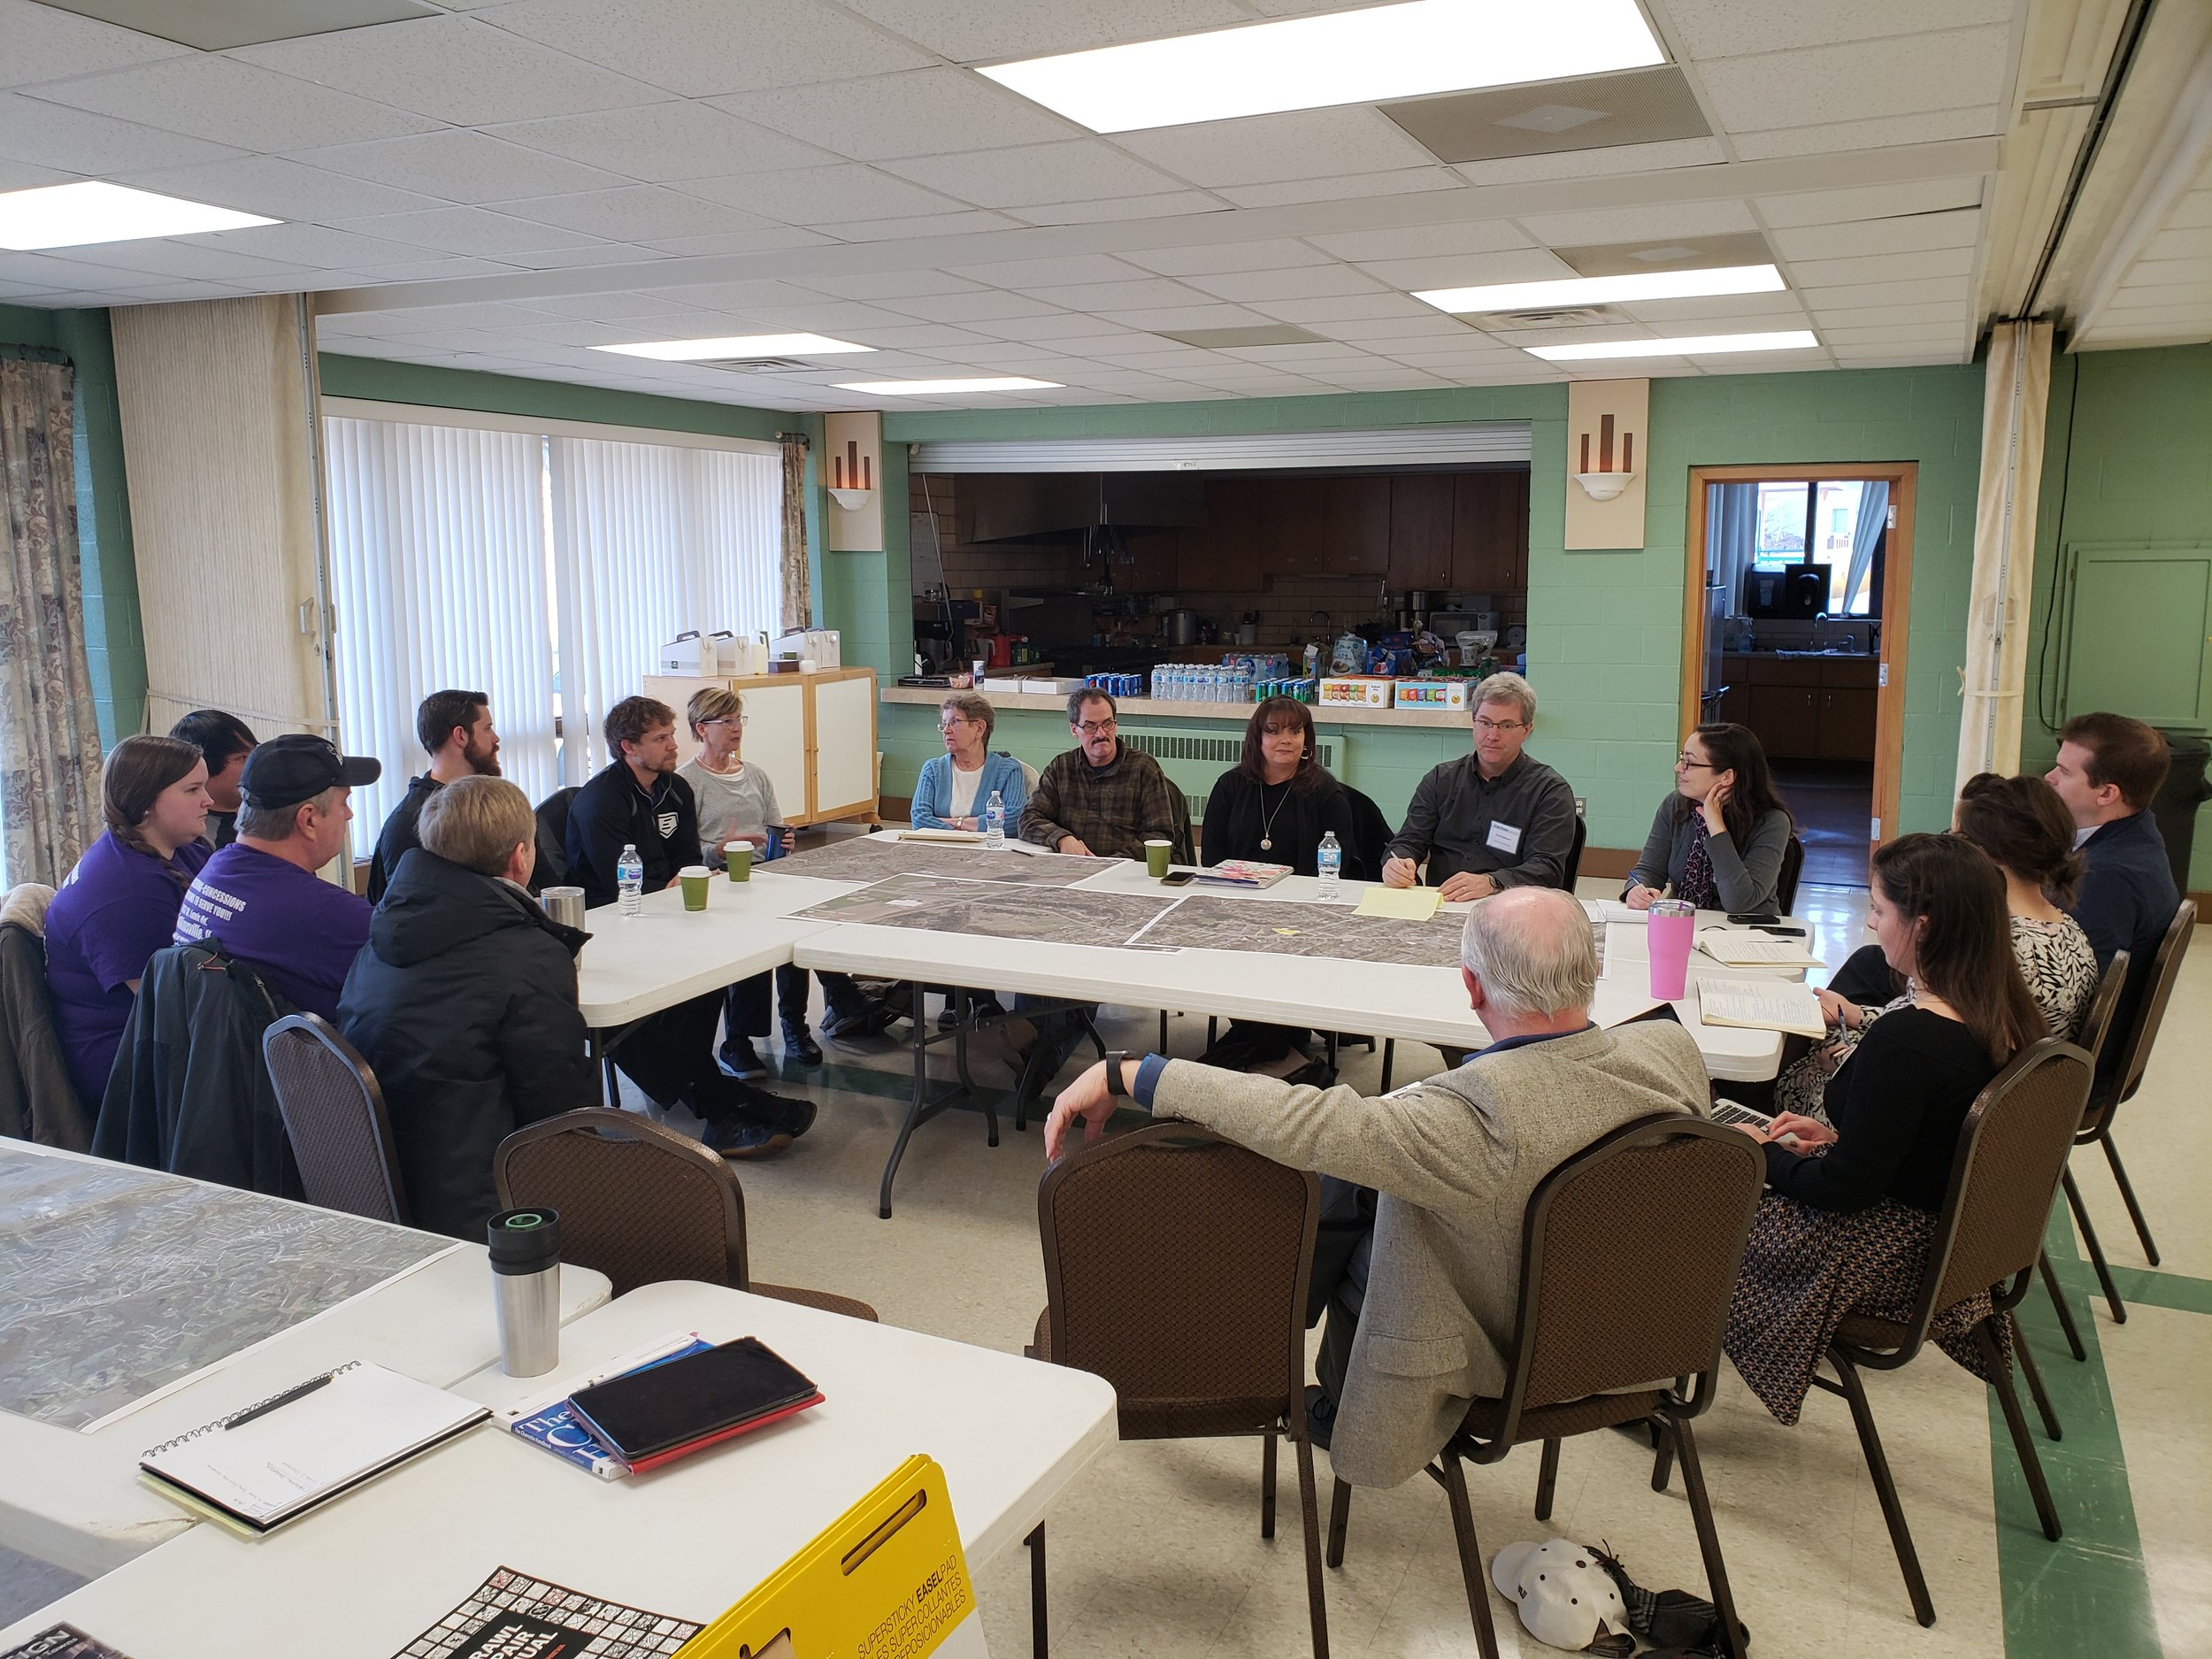 Focus group meeting during the community charrette.